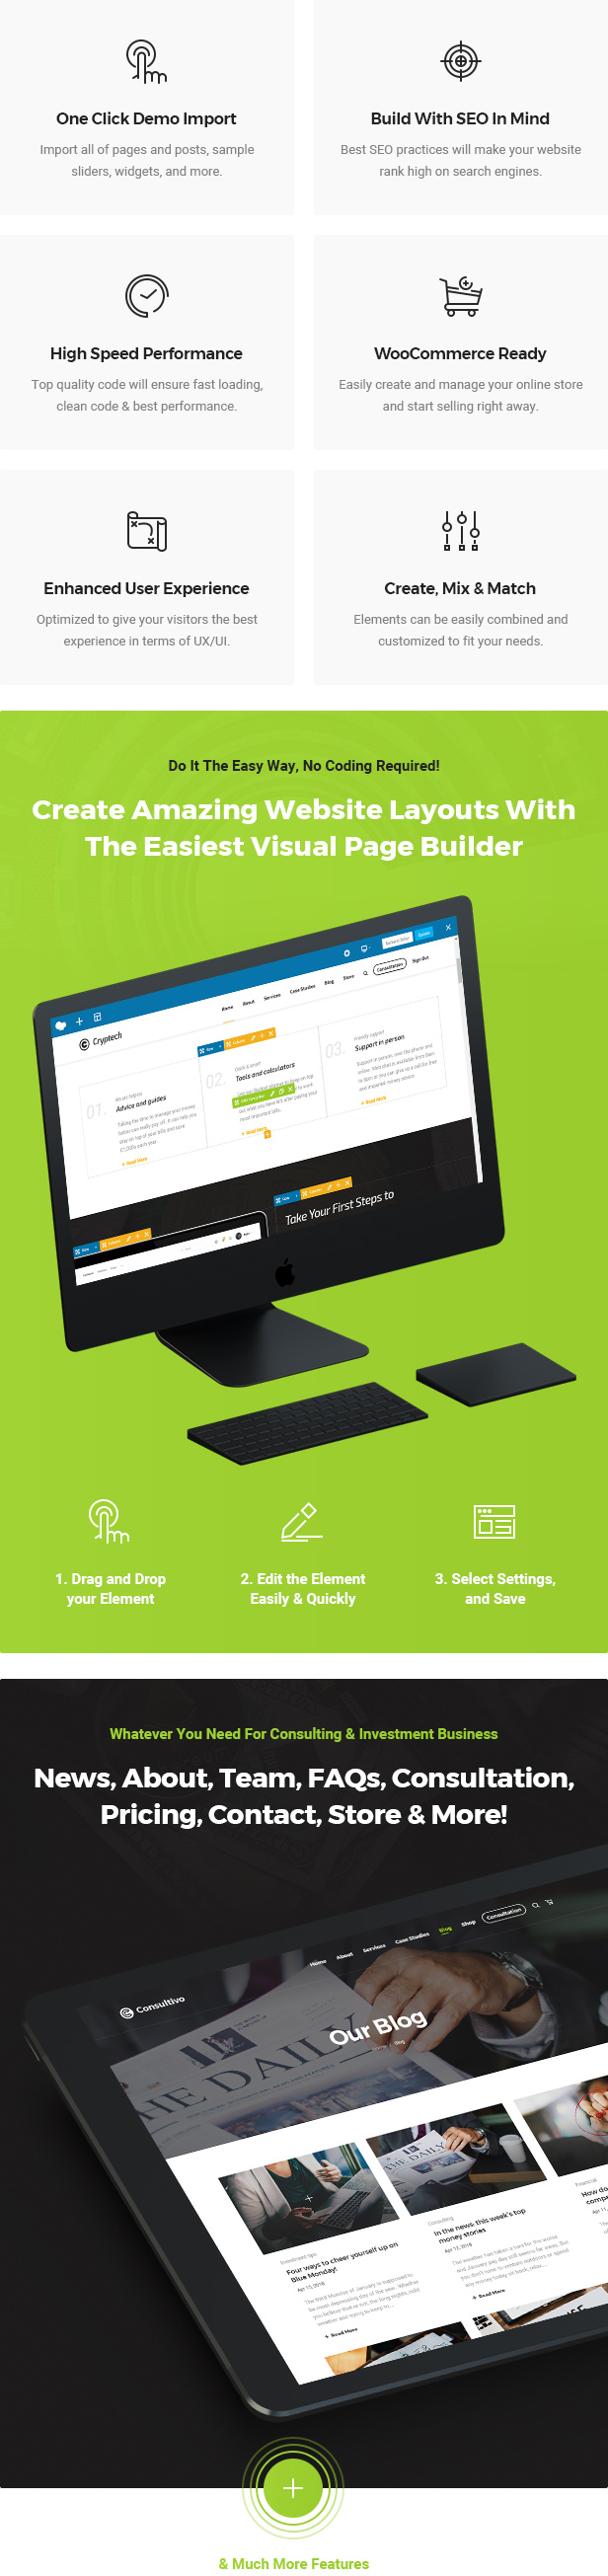 Consultivo-Business Consulting and Investment WordPress Theme-7